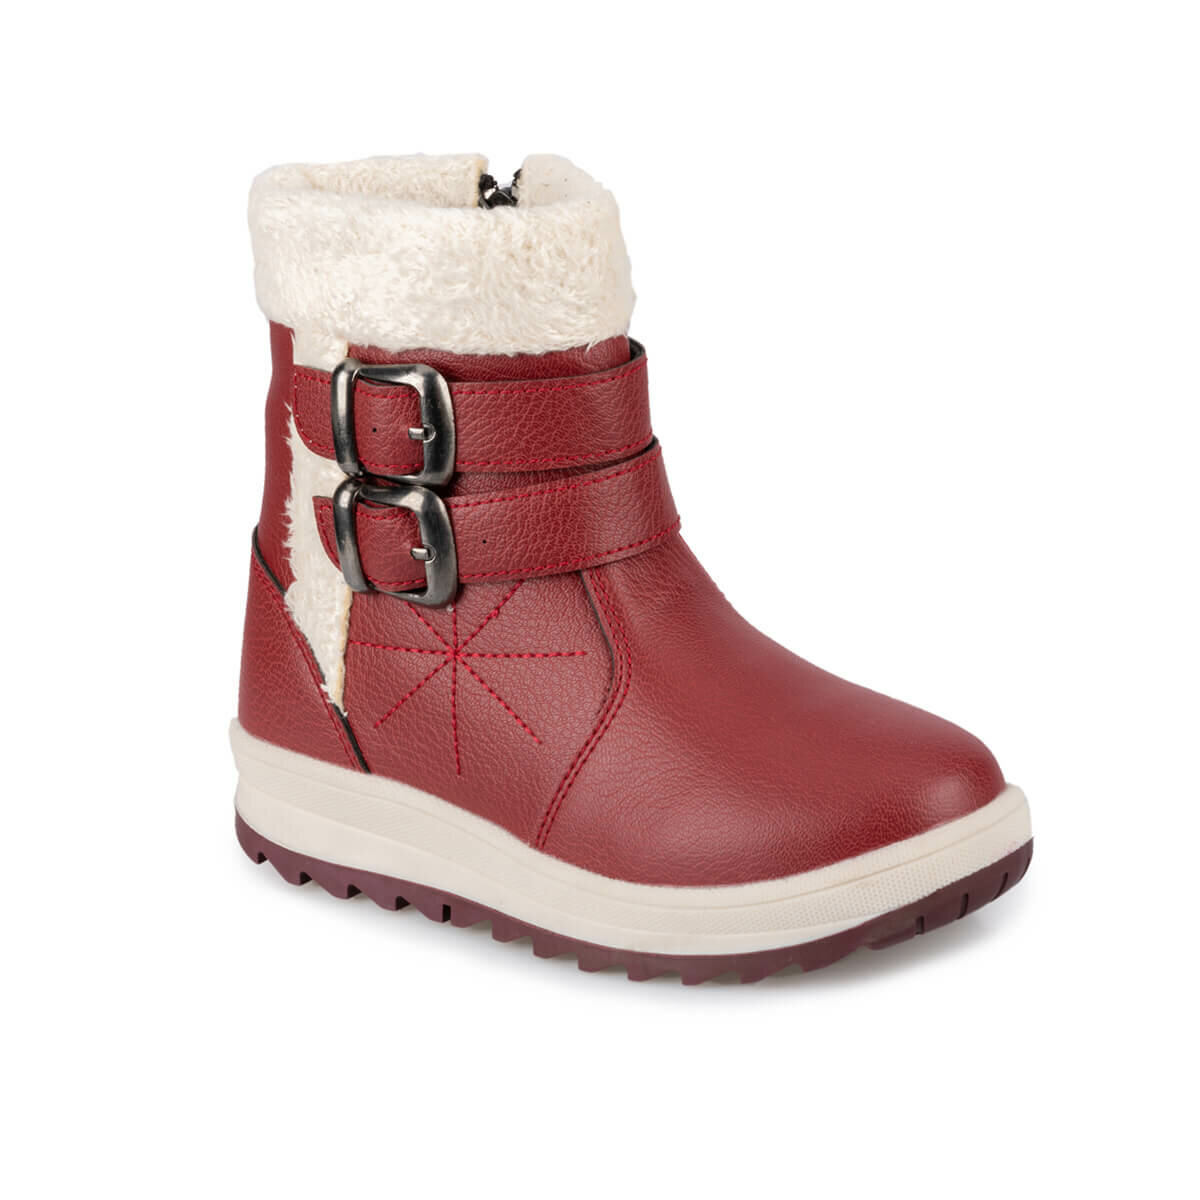 FLO VILKAS 9PR Burgundy Female Child Boots KINETIX